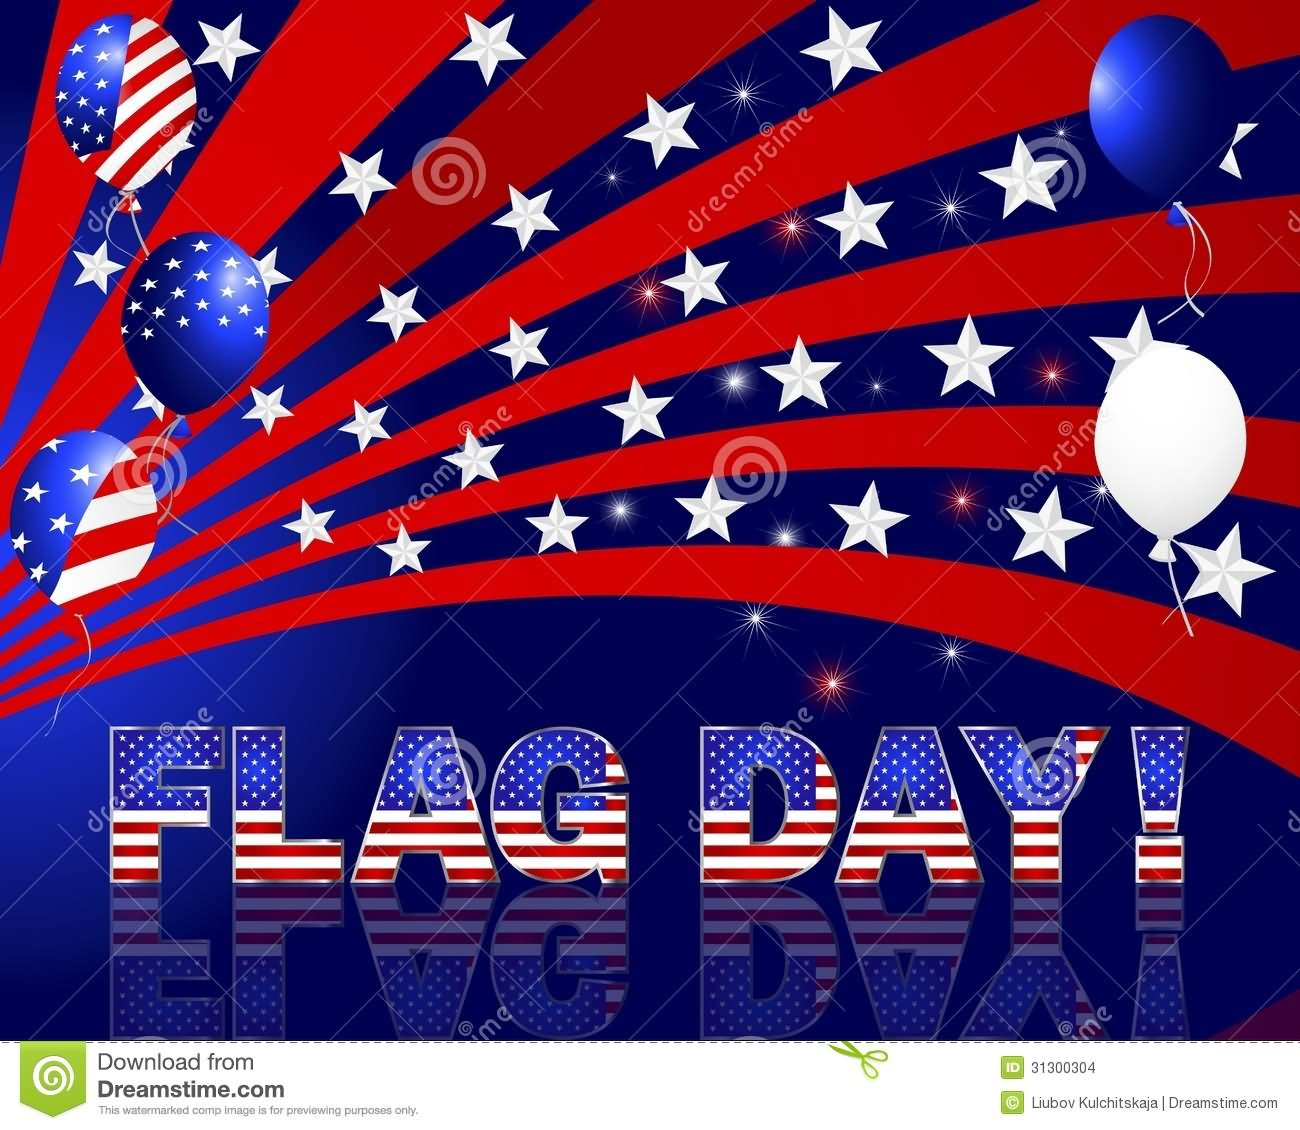 15 Wonderful Flag Day Clipart Images And Pictures